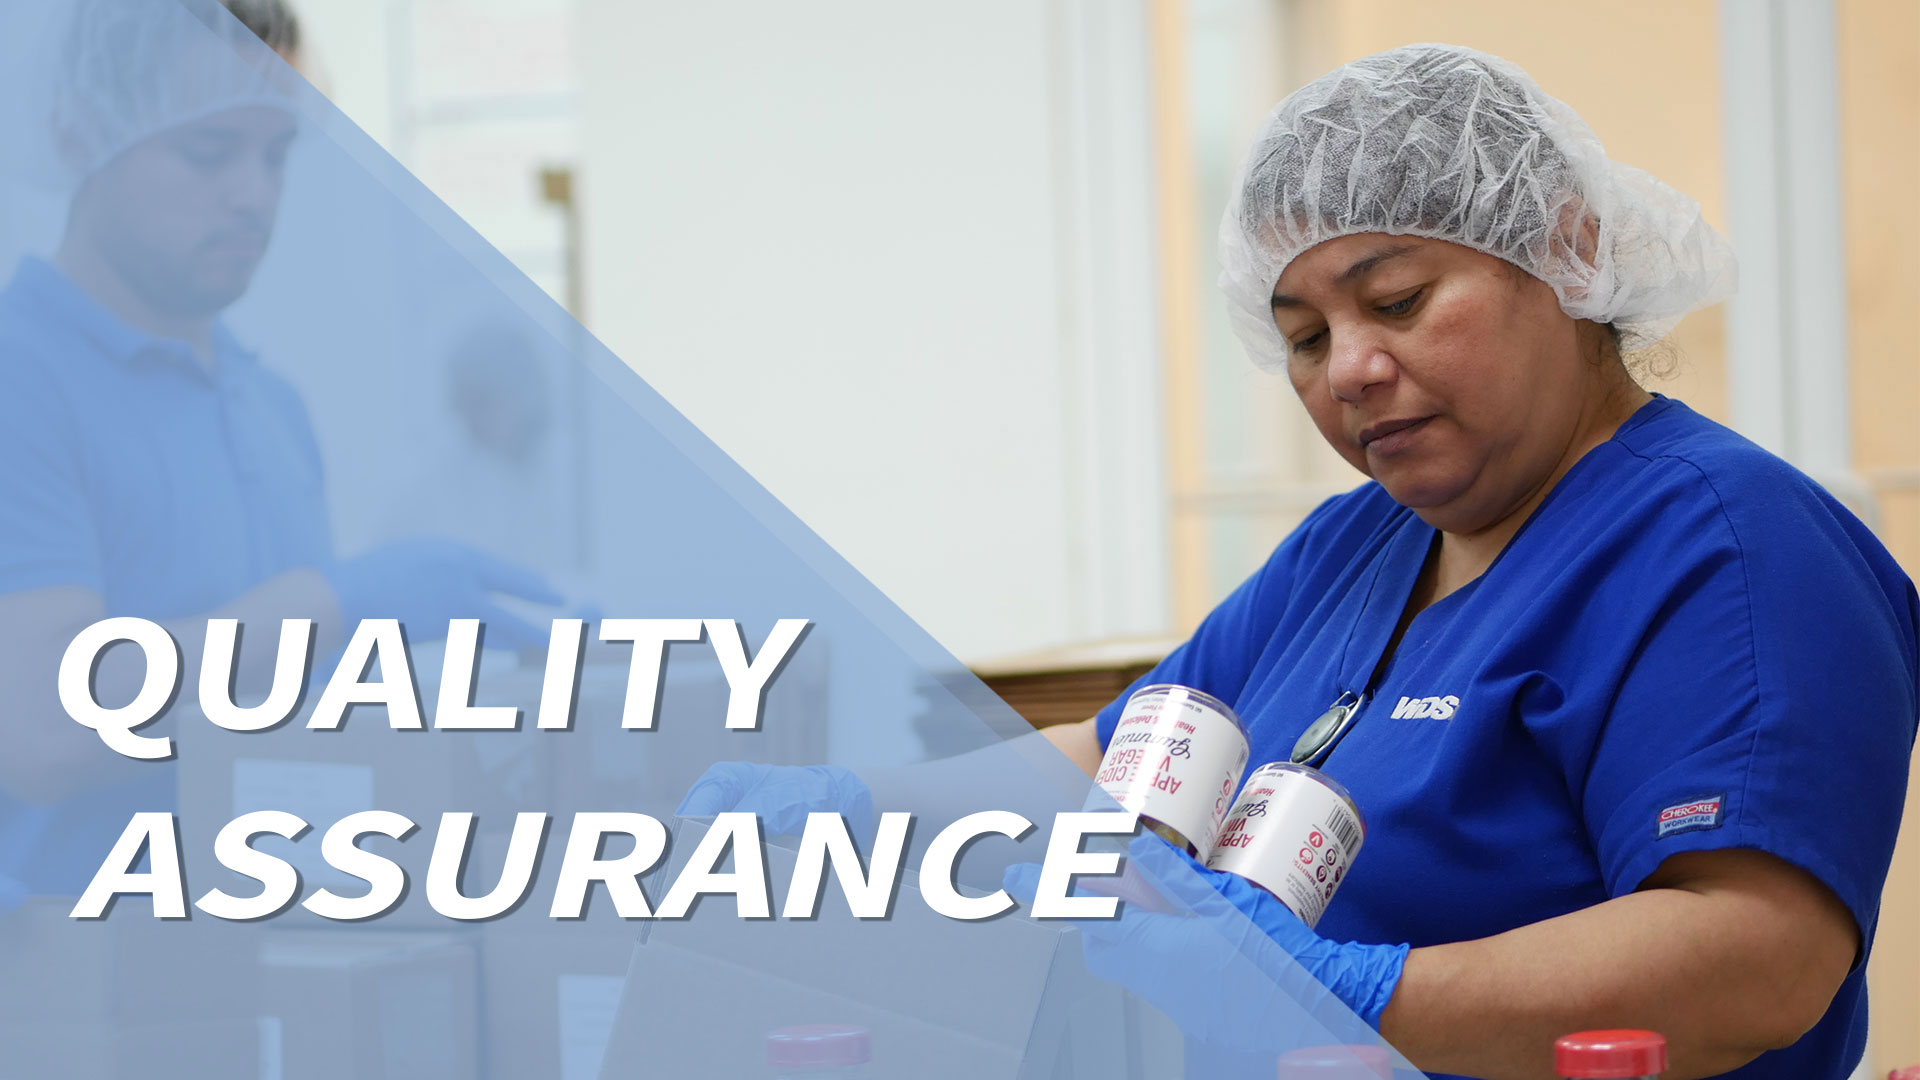 Quality Assurance is one of the WDSrx Video Series.